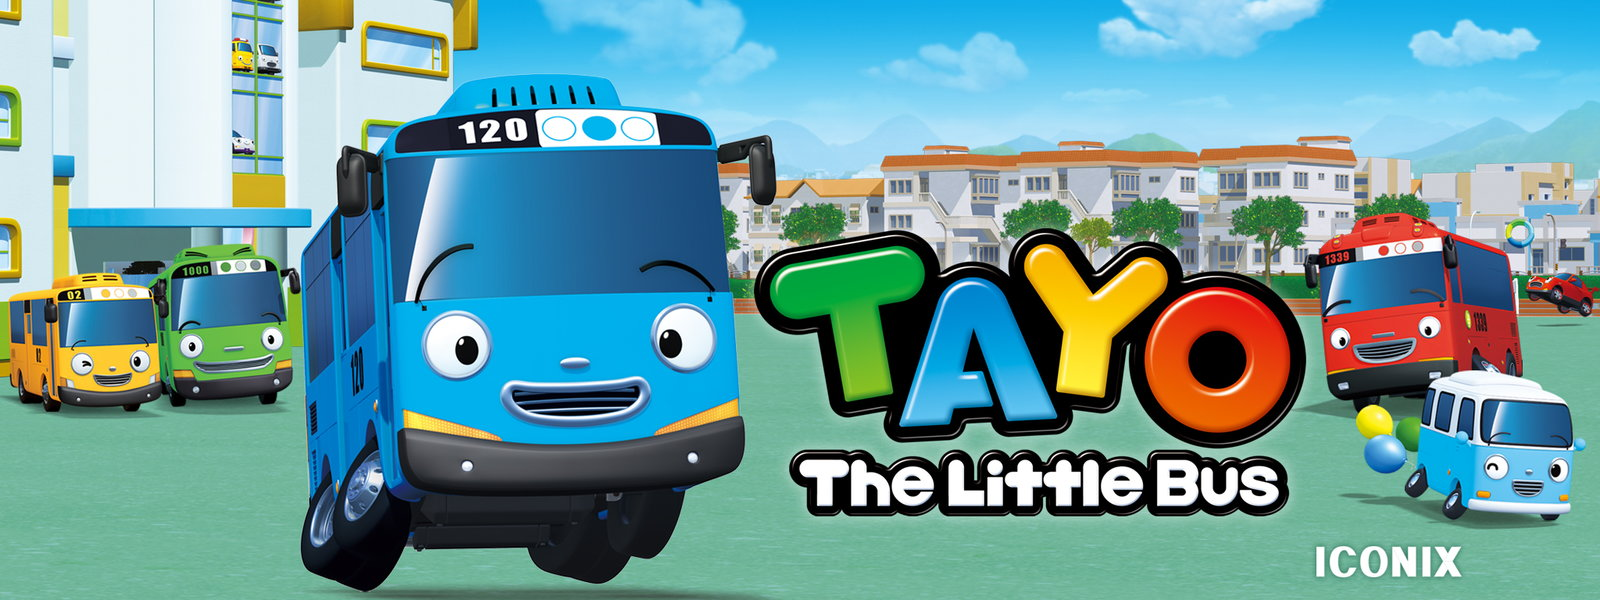 roger and friends dating tayo little bus